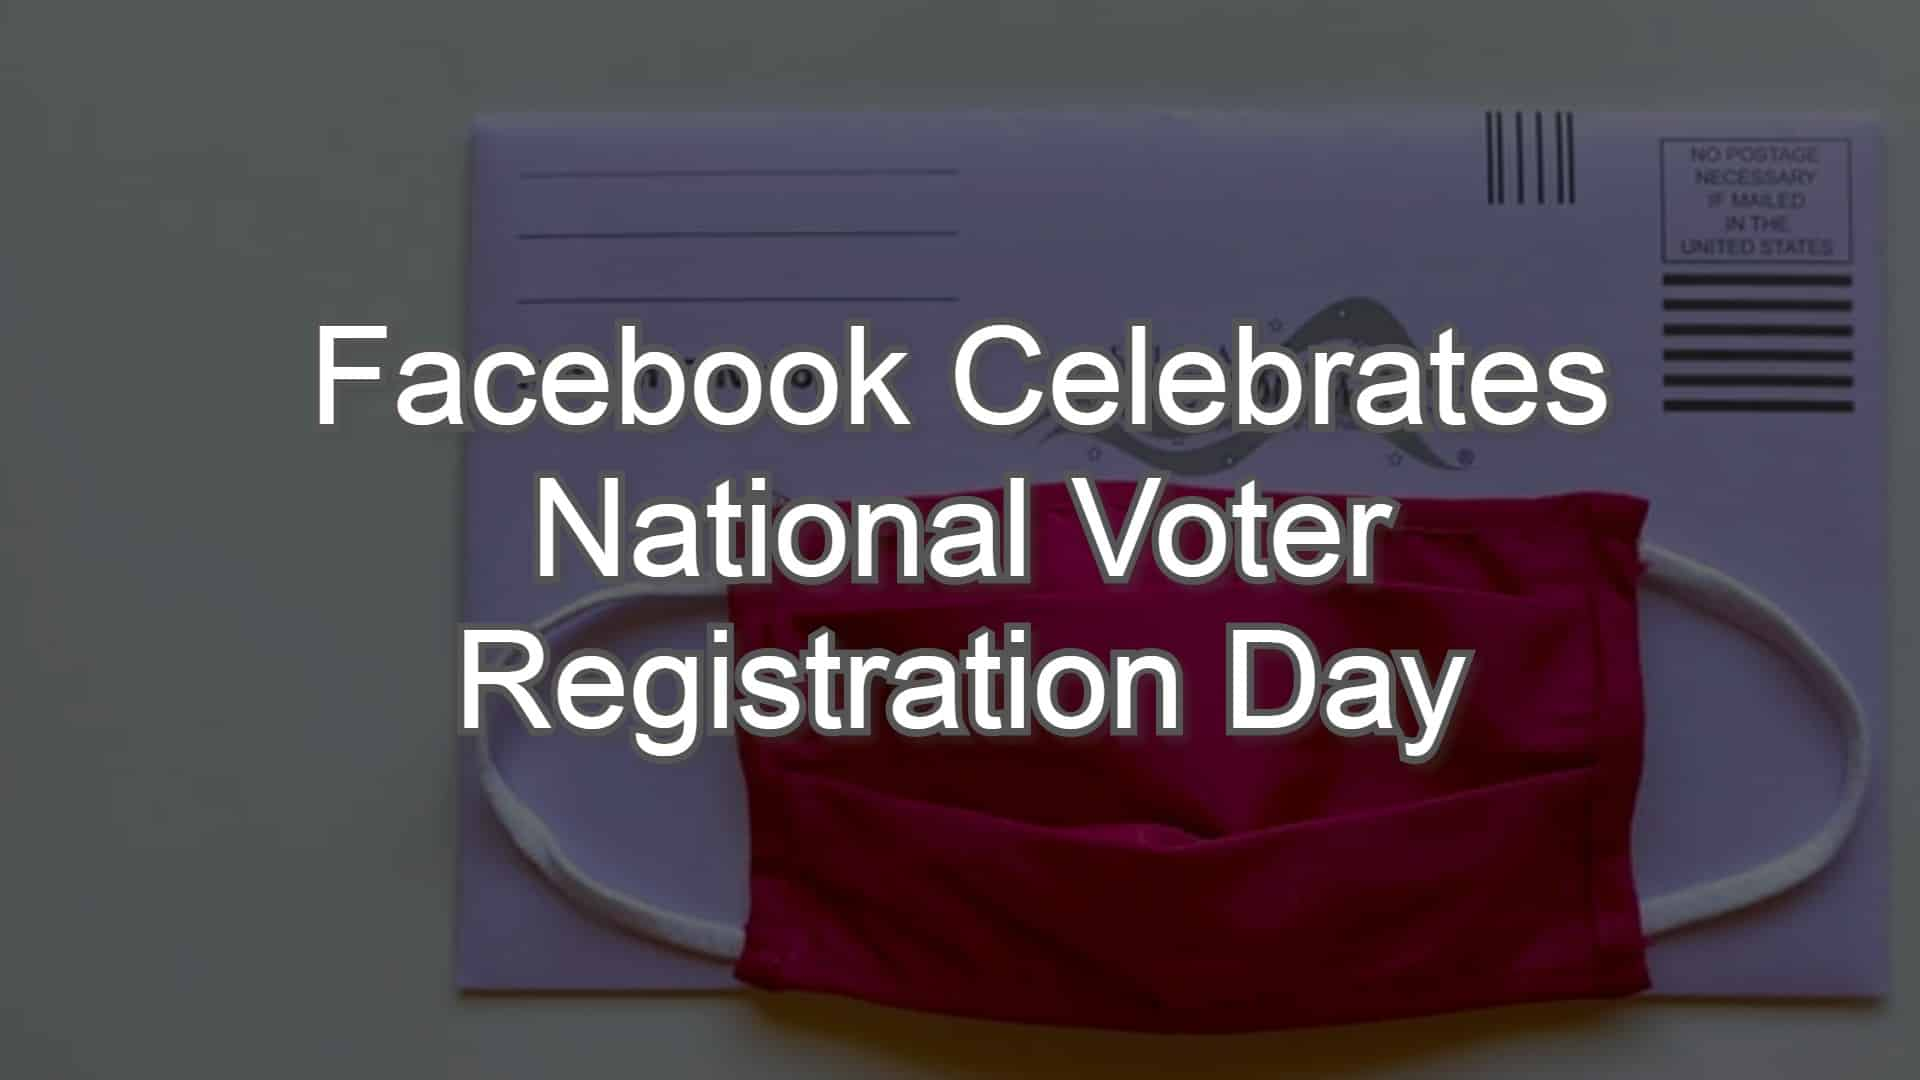 Facebook Celebrates National Voter Registration Day